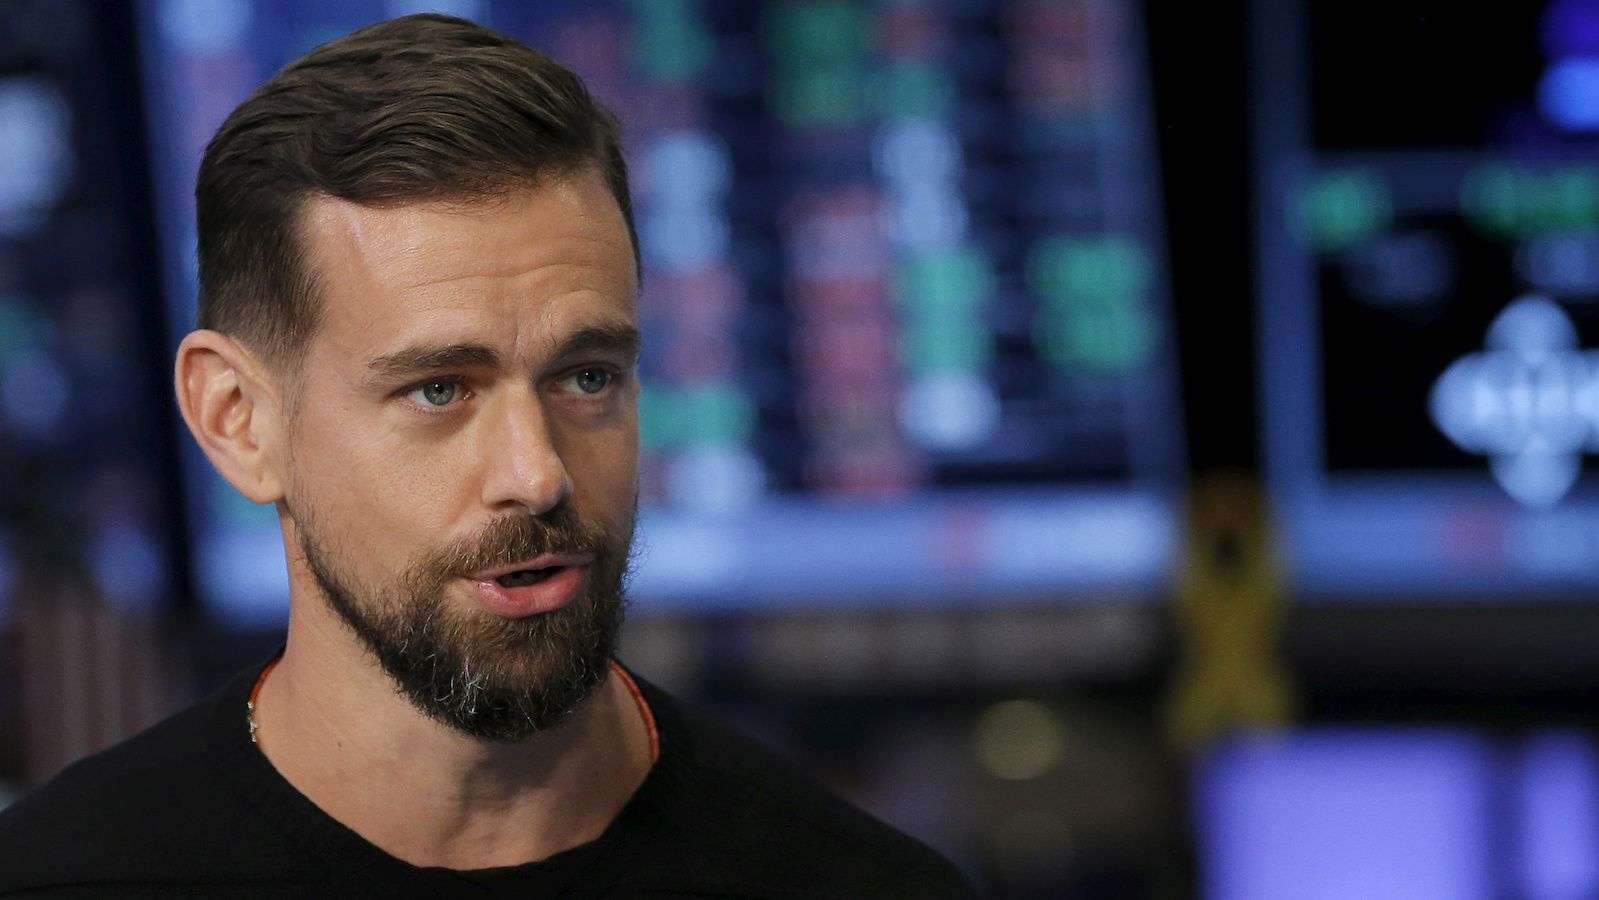 Jack Dorsey sees bitcoin as the currency of the future